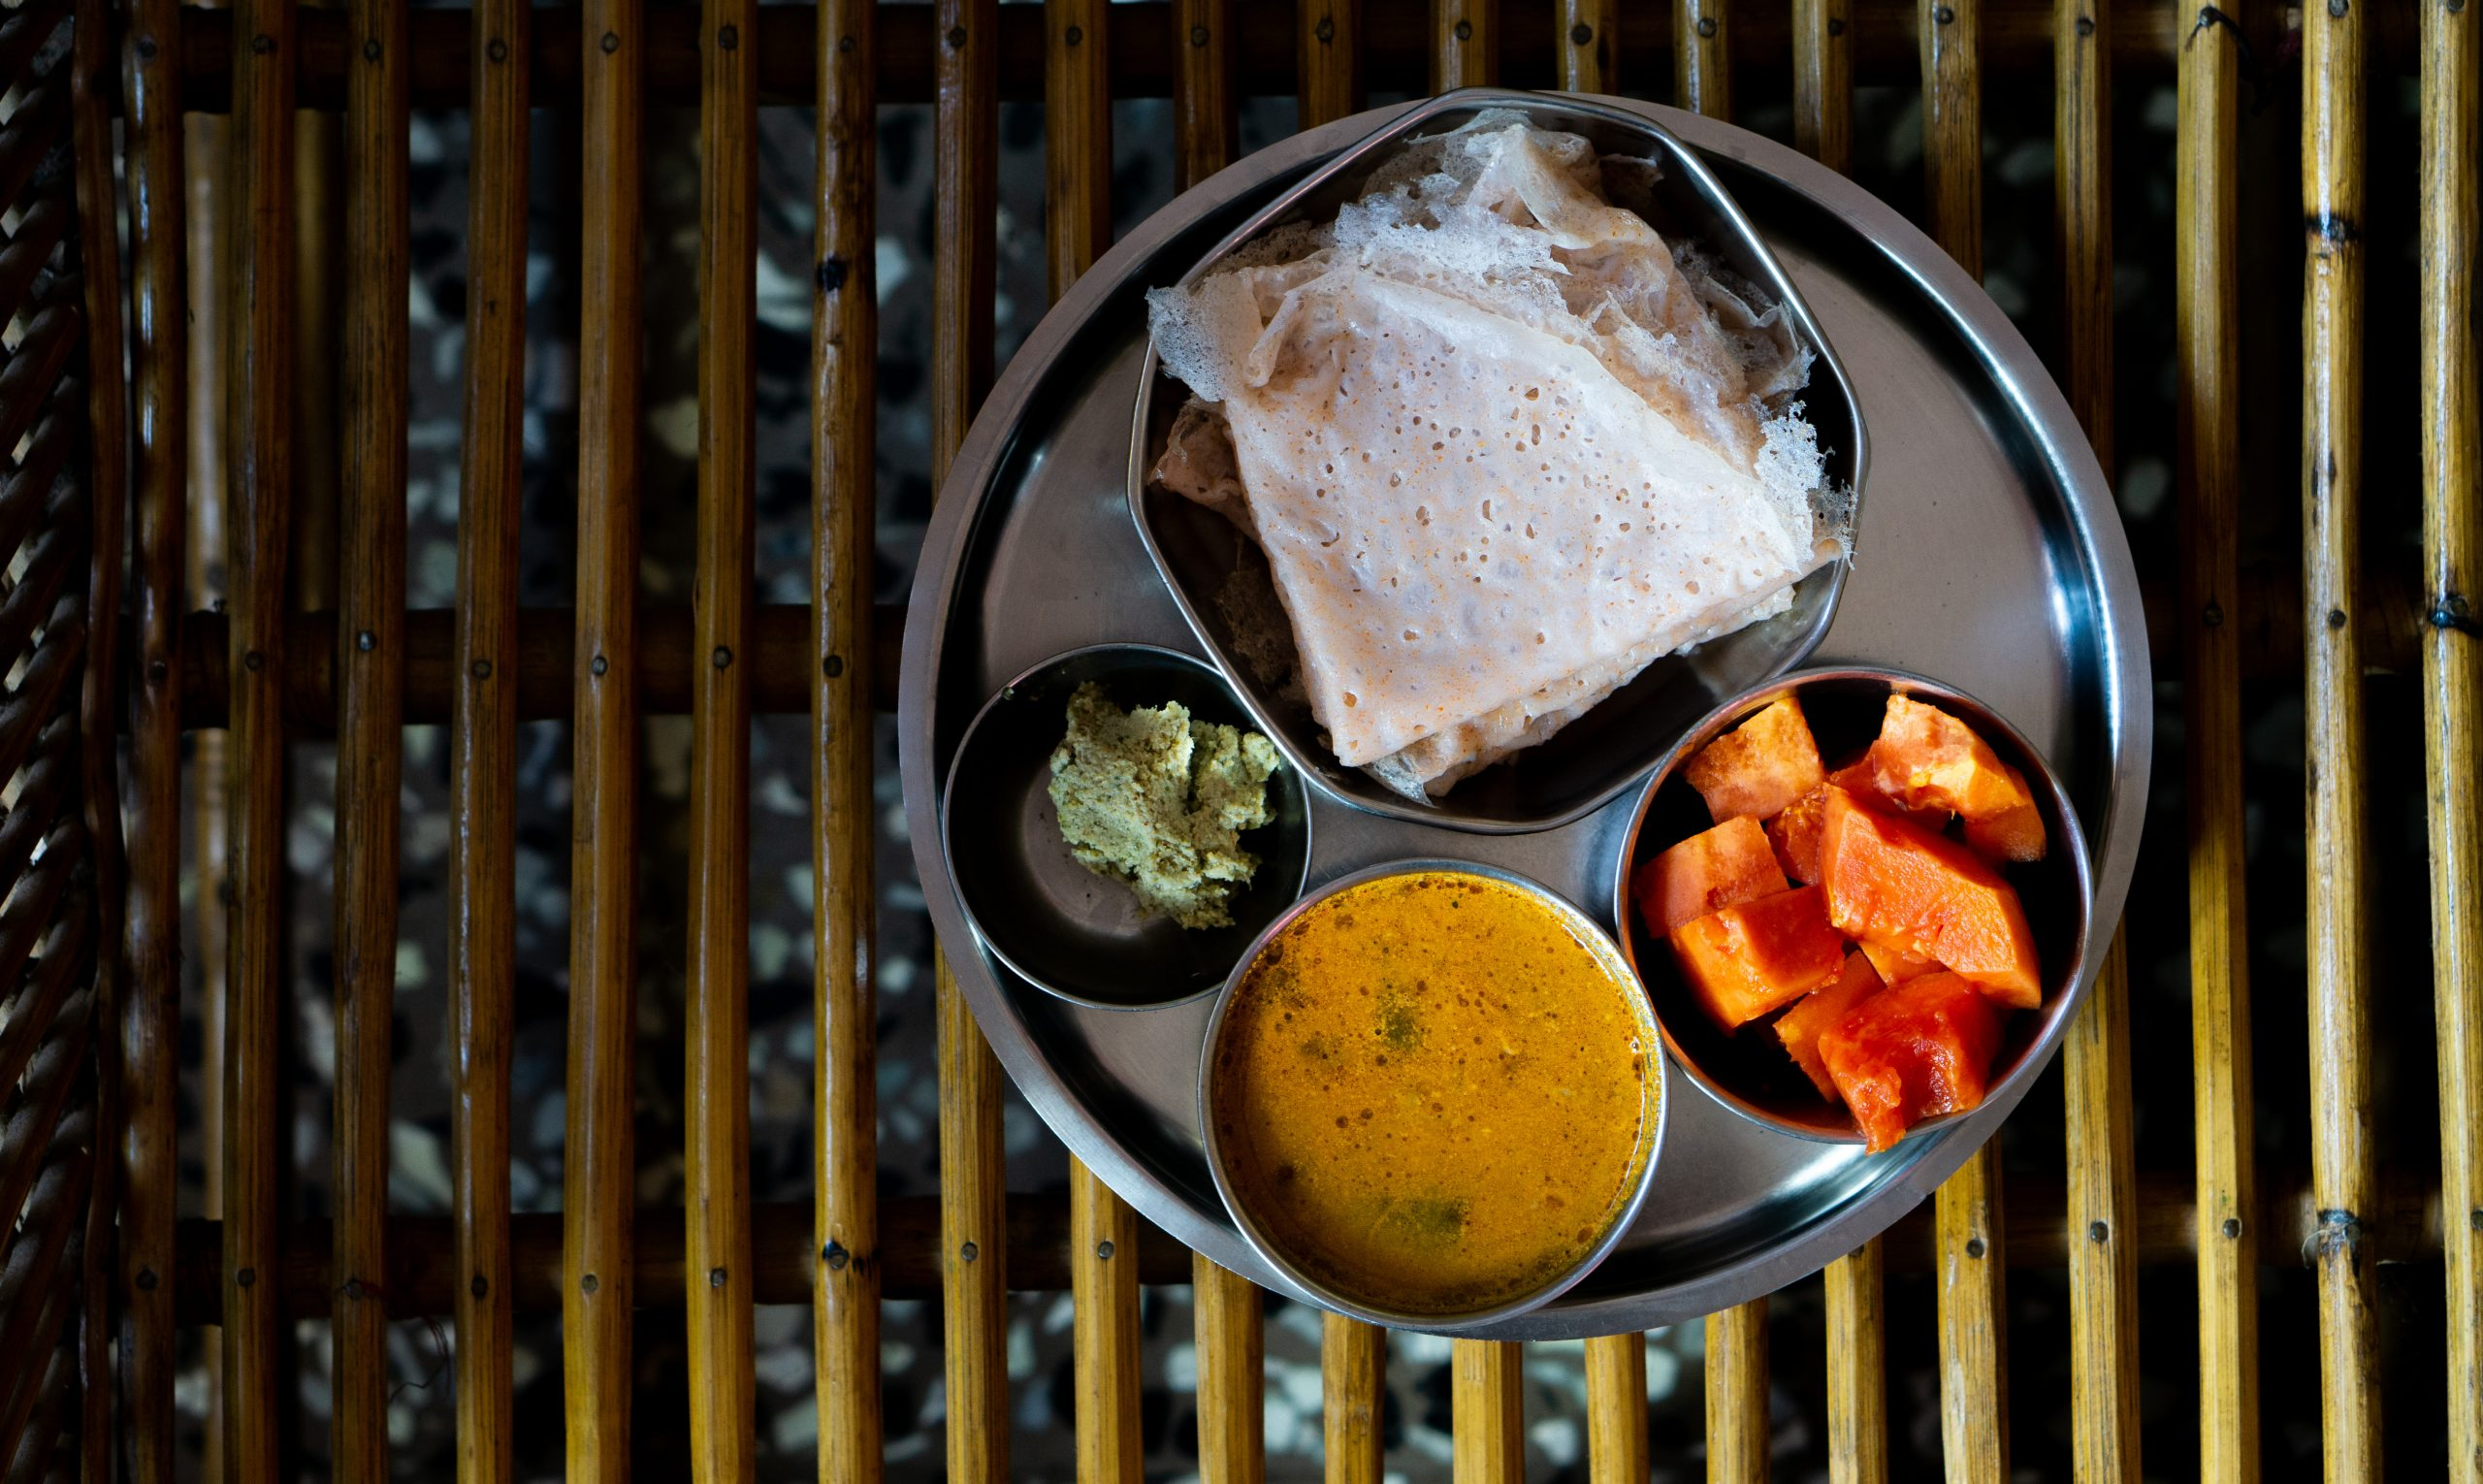 dosa and accompaniments